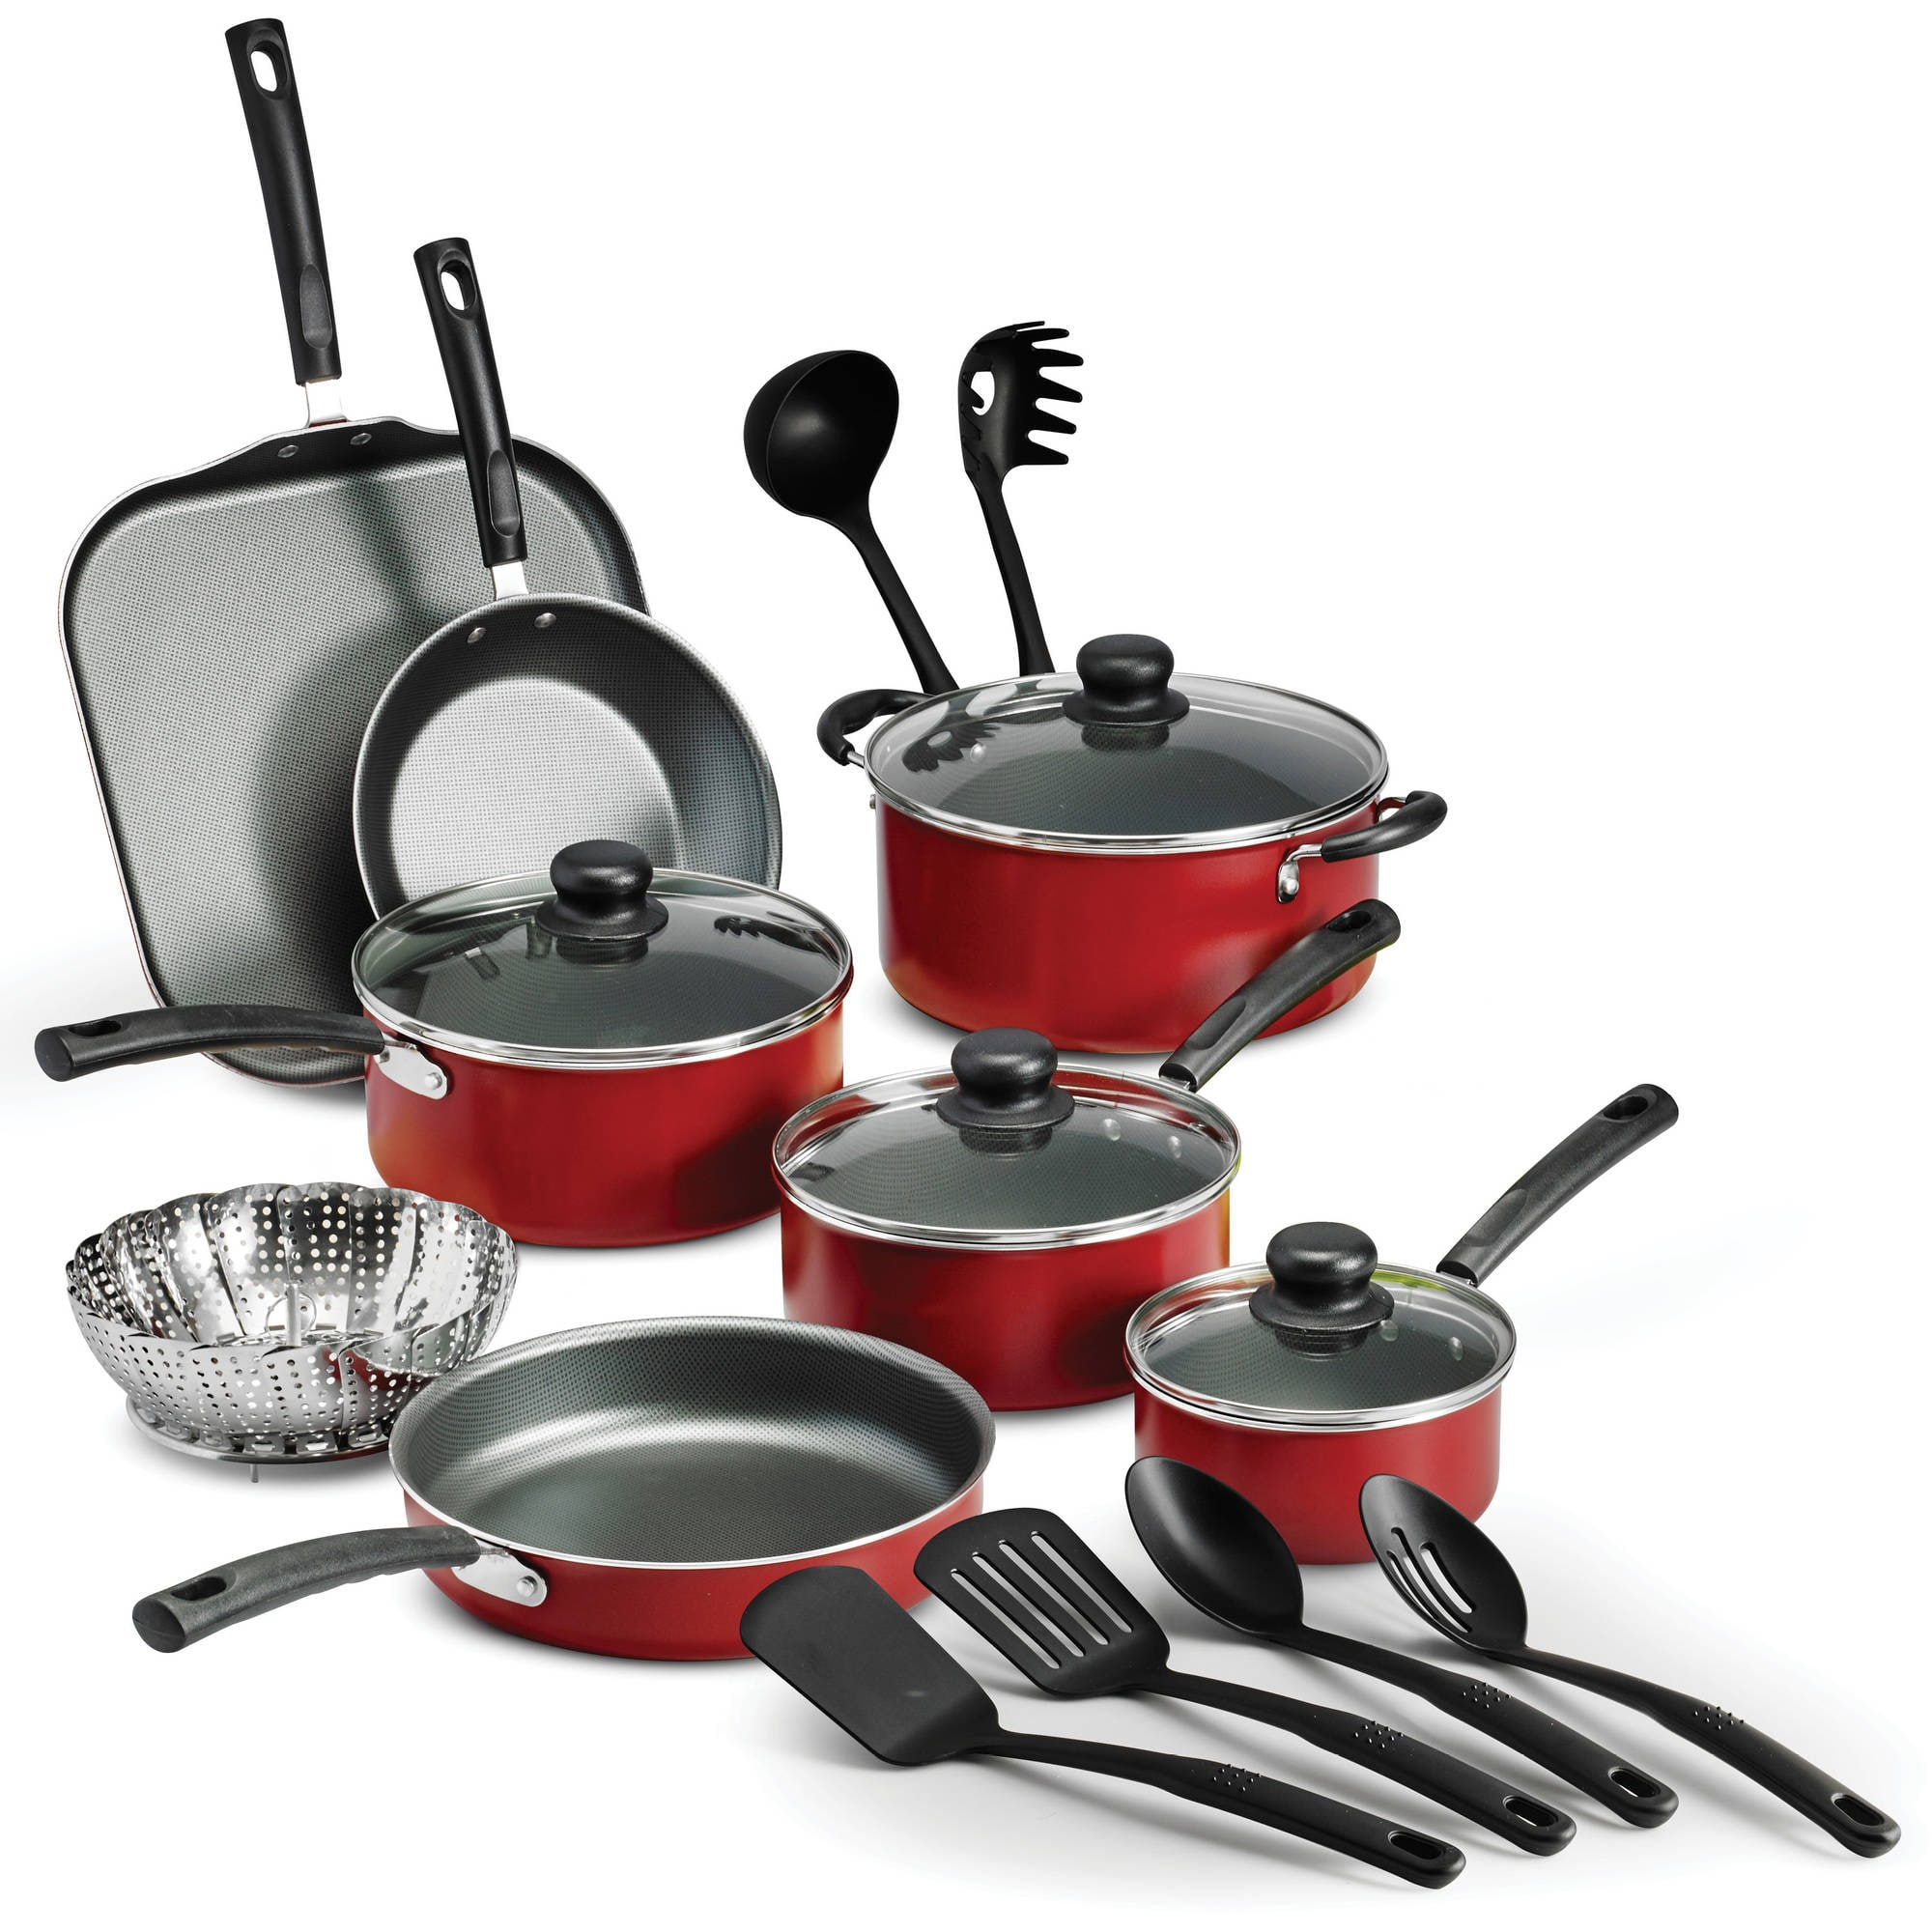 18-Piece Tramontina Primaware Non-stick Cookware Set Red $35.96